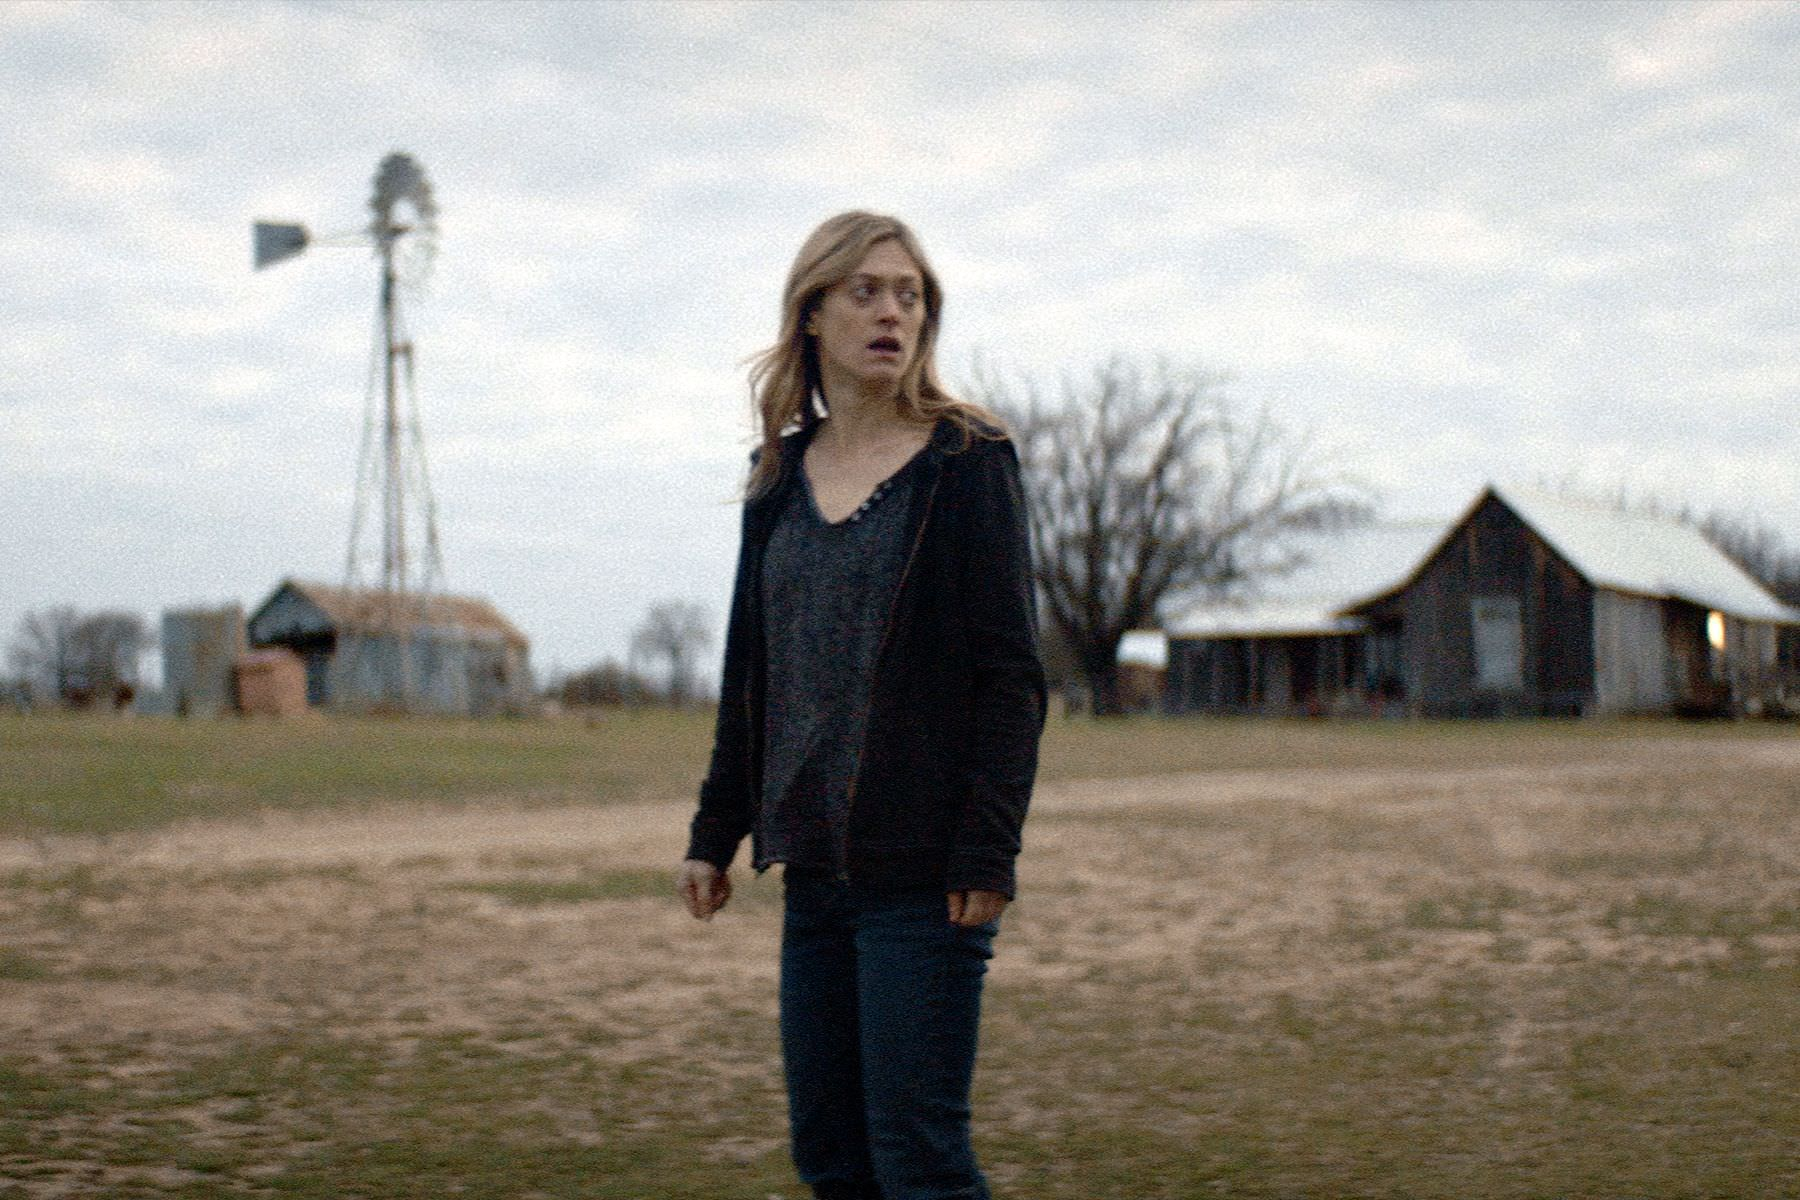 The Dark and The Wicked - Marin Ireland as Louise - Photo provided by Fantasia Festival - Photo Credit: RLJE Films / Shudder / Traveling Picture Show Company (TPSC) / Unbroken Pictures / Shotgun Shack Pictures / Inwood Road Films